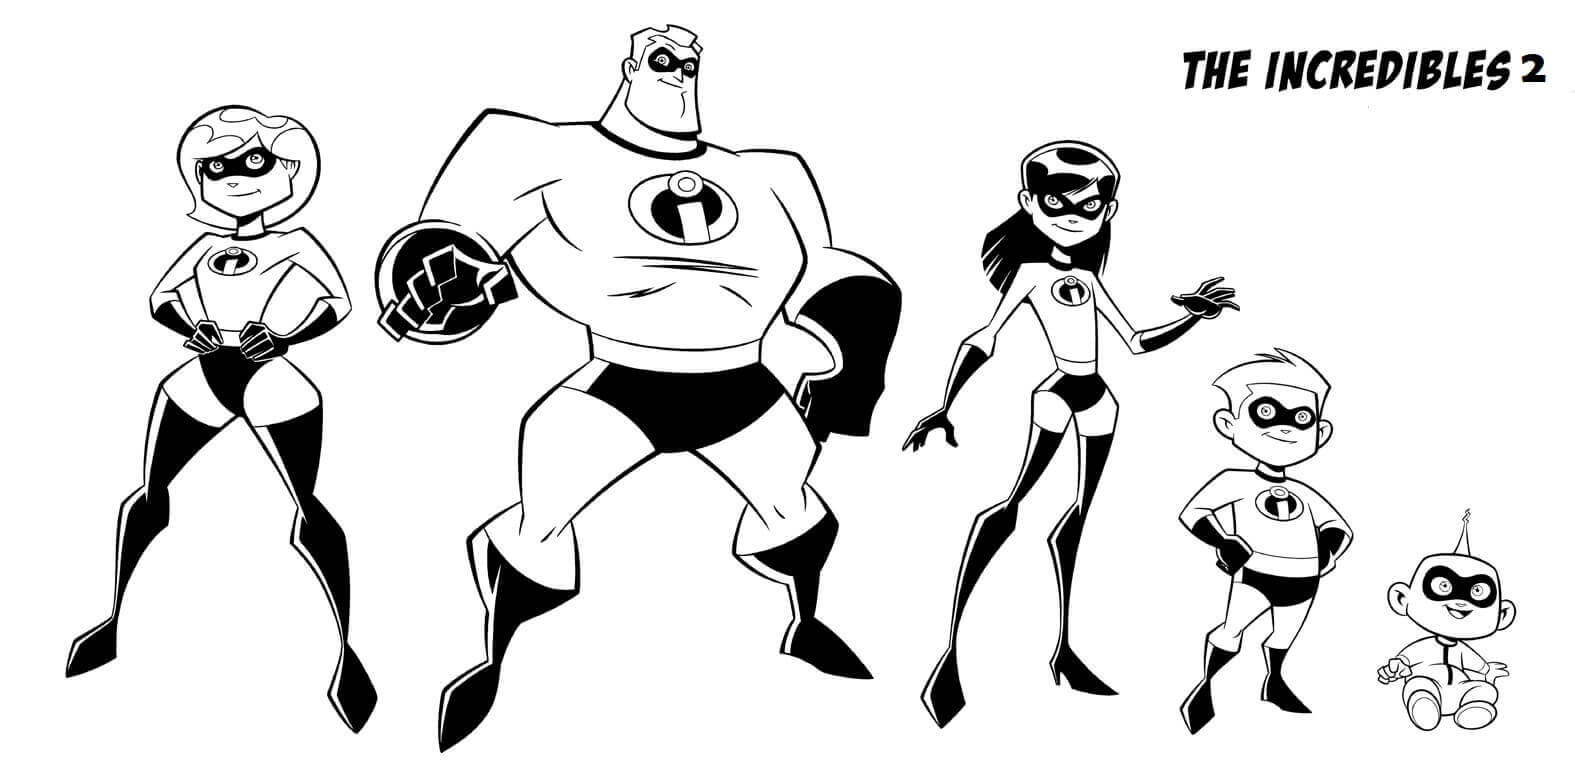 printable incredibles 2 coloring pages free printable incredibles 2 coloring pages 2 incredibles printable pages coloring